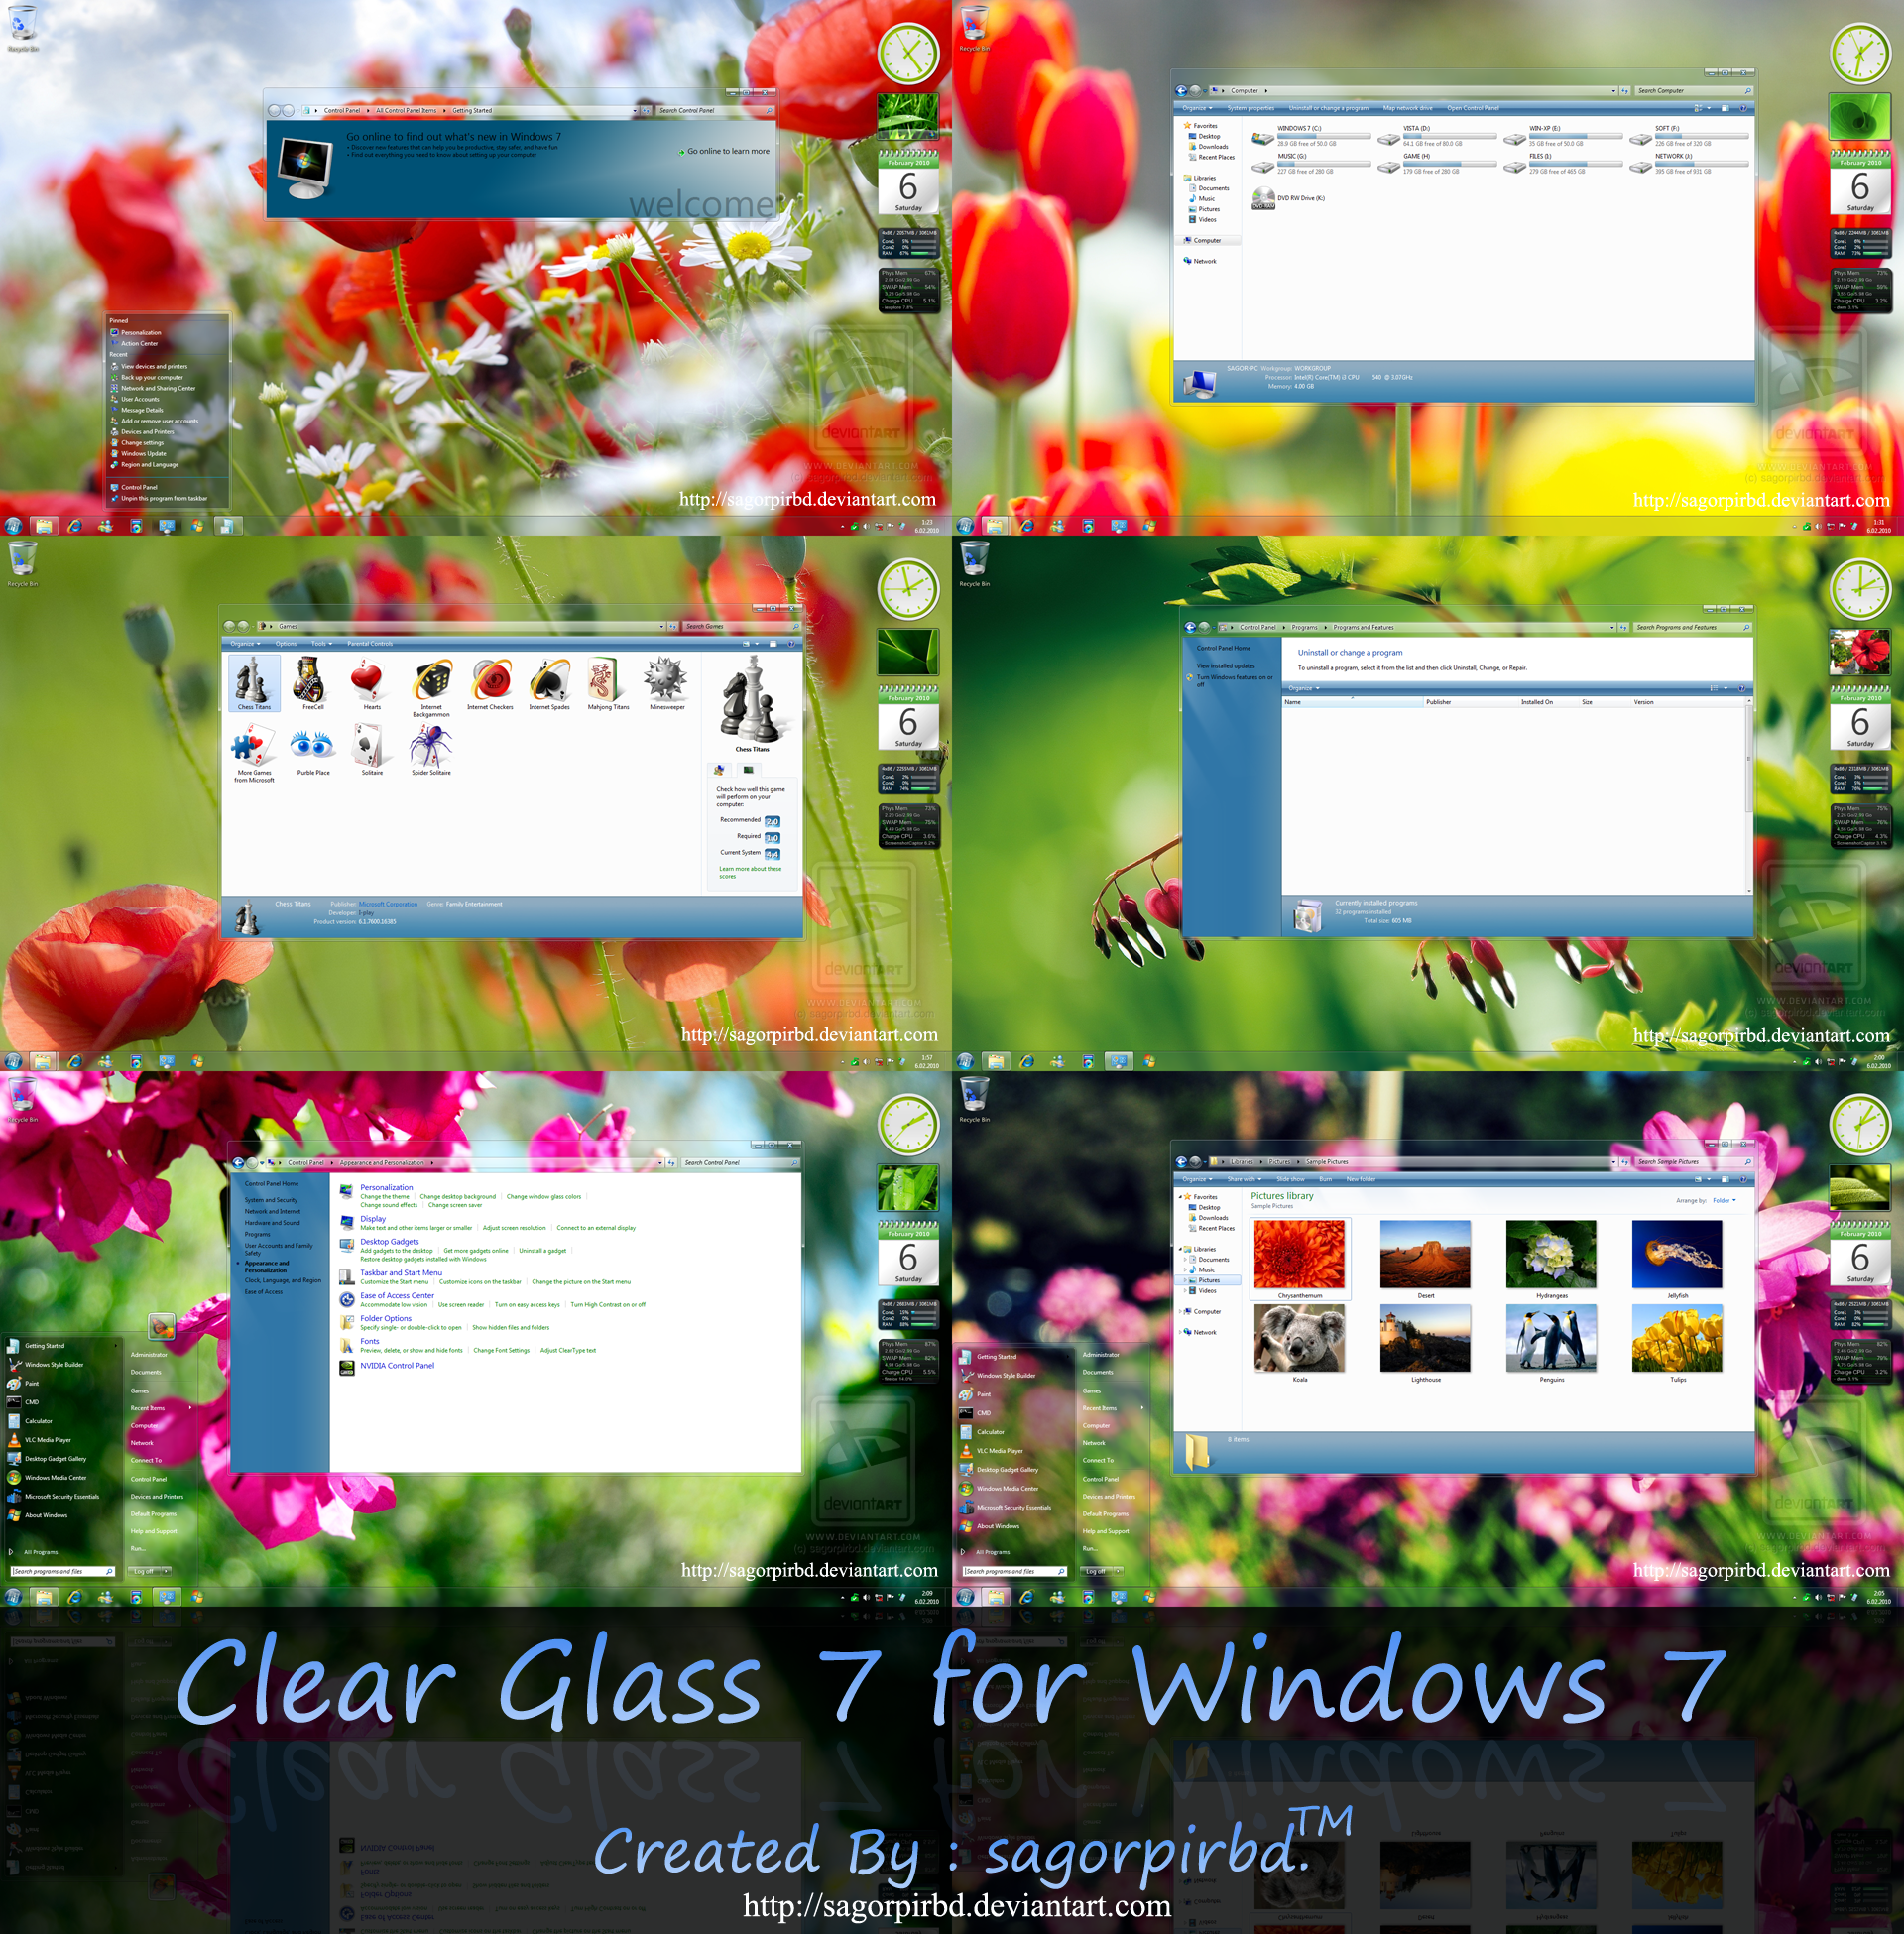 Clear Glass 7 for Windows 7